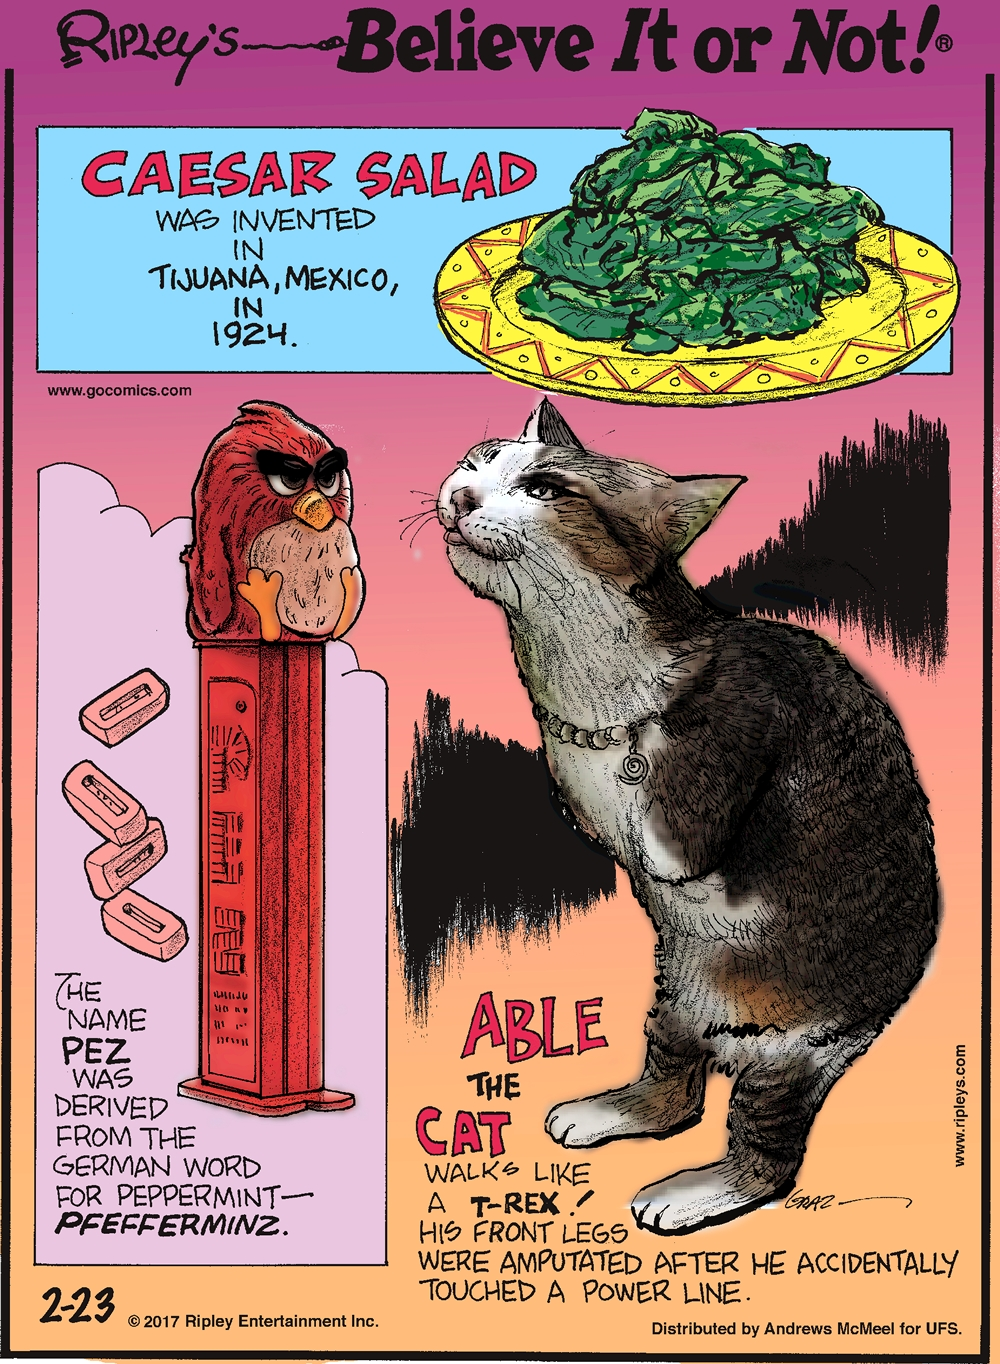 Caesar Salad was invented in Tijuana, Mexico, in 1924.-------------------- The name Pez was derived from the German word for peppermint- Pfefferminz.-------------------- Able the Cat walks like a T-Rex! His front legs were amputated after he accidentally touched a power line.